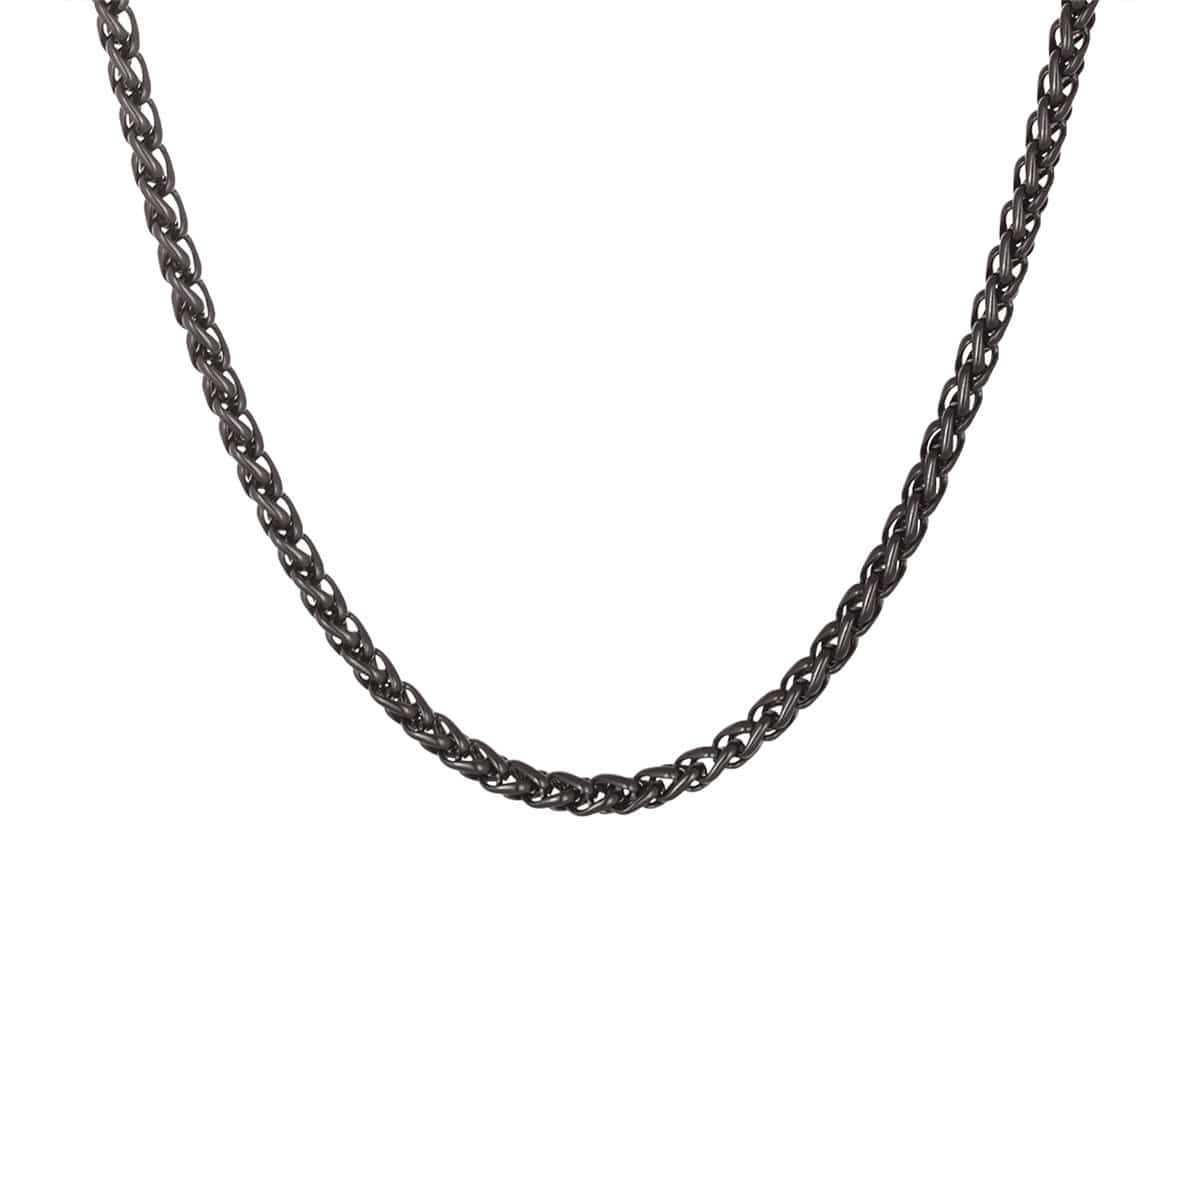 Black Stainless Steel Polished 3.5 mm Round Wheat Chain Chains